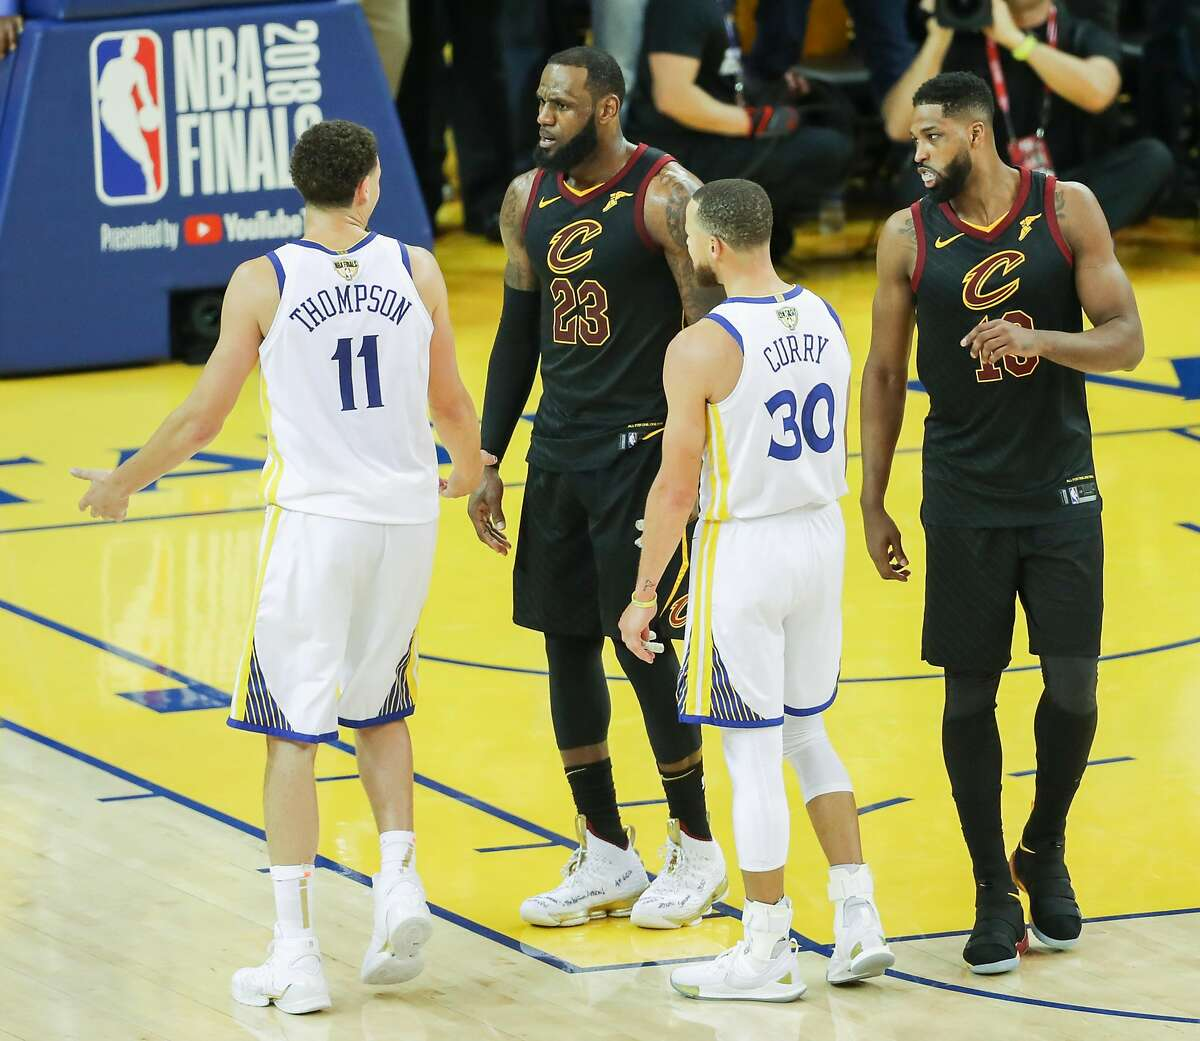 Golden State Warriors' Klay Thompson and Cleveland Cavaliers' LeBron James share words in overtime during game 1 of The NBA Finals between the Golden State Warriors and the Cleveland Cavaliers at Oracle Arena on Thursday, May 31, 2018 in Oakland, Calif.